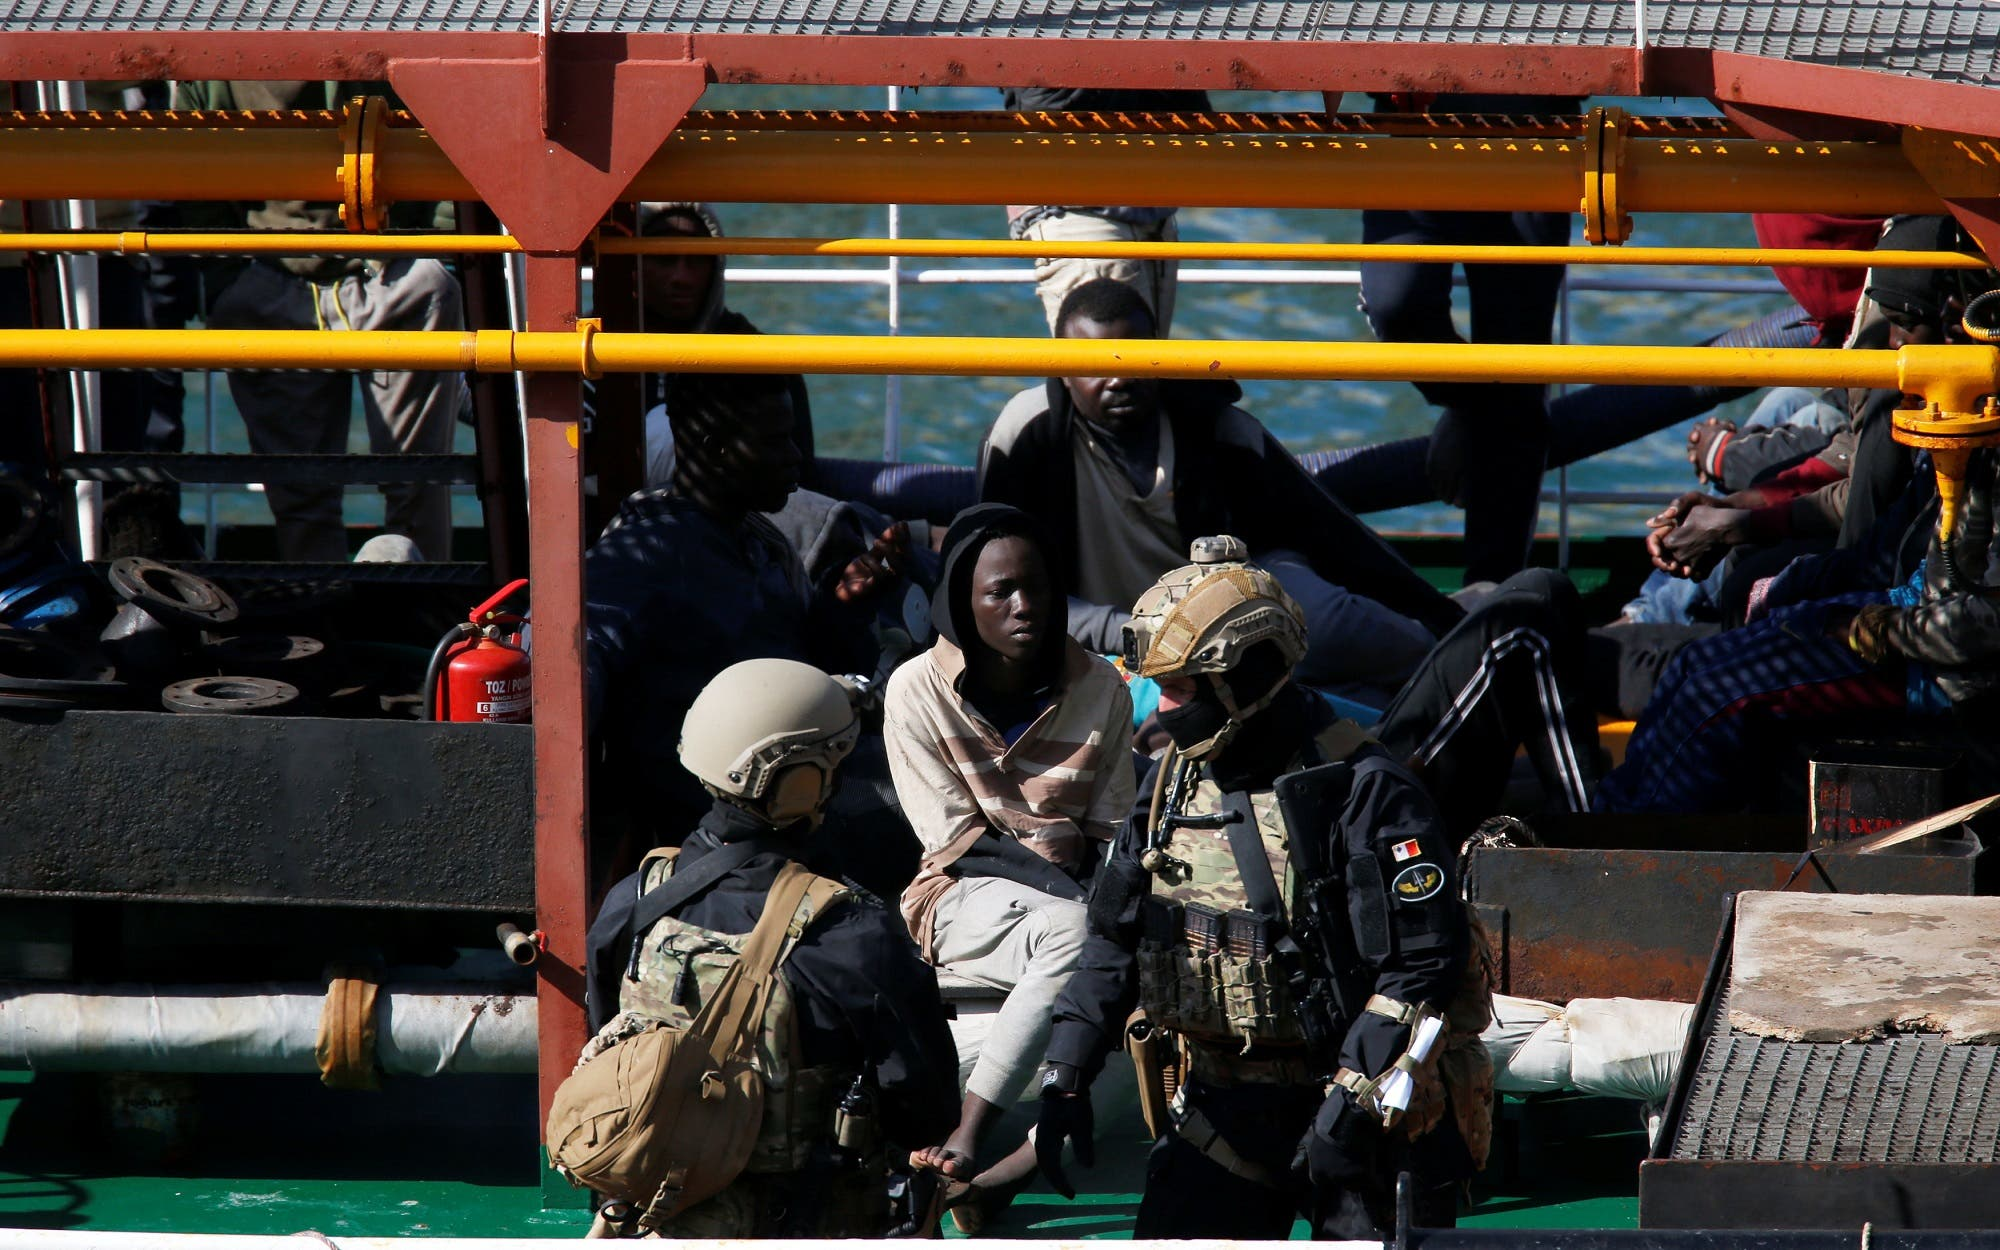 Maltese Special Forces soldiers guard a group of migrants on the merchant ship Elhiblu 1 after it arrived in Valletta's Grand Harbour, Malta on March 28, 2019. (Reuters)